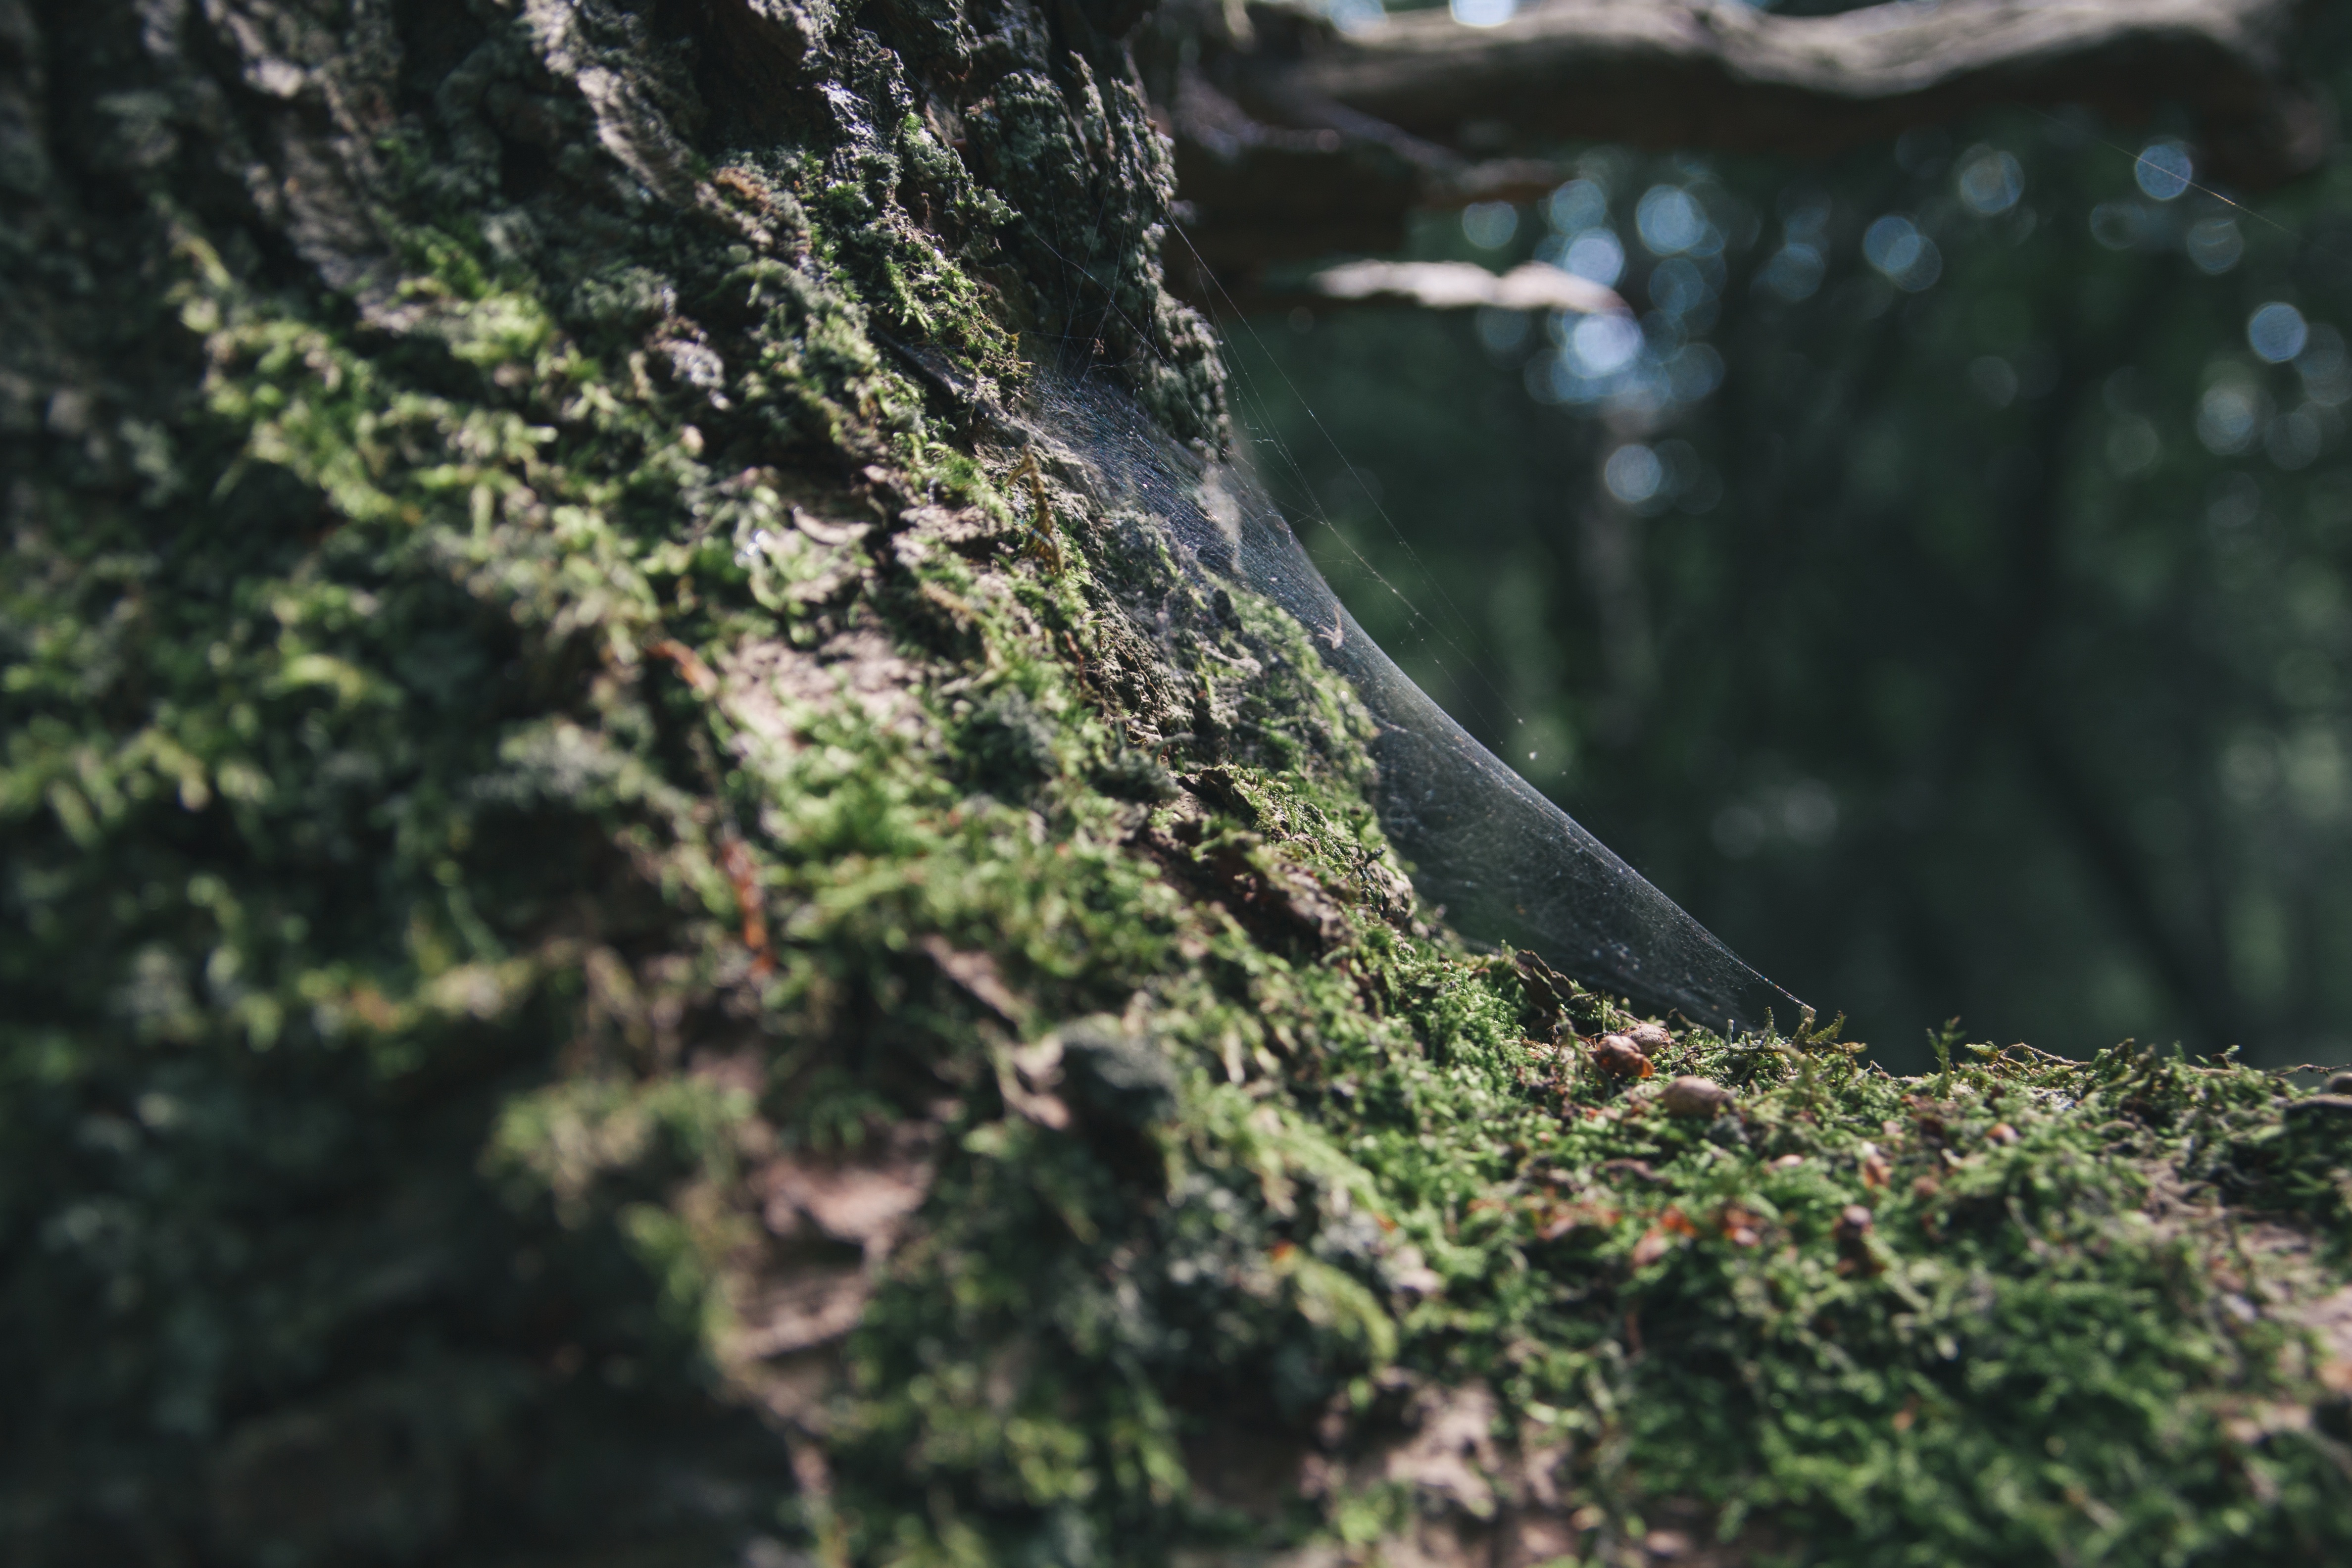 a close up of a tree